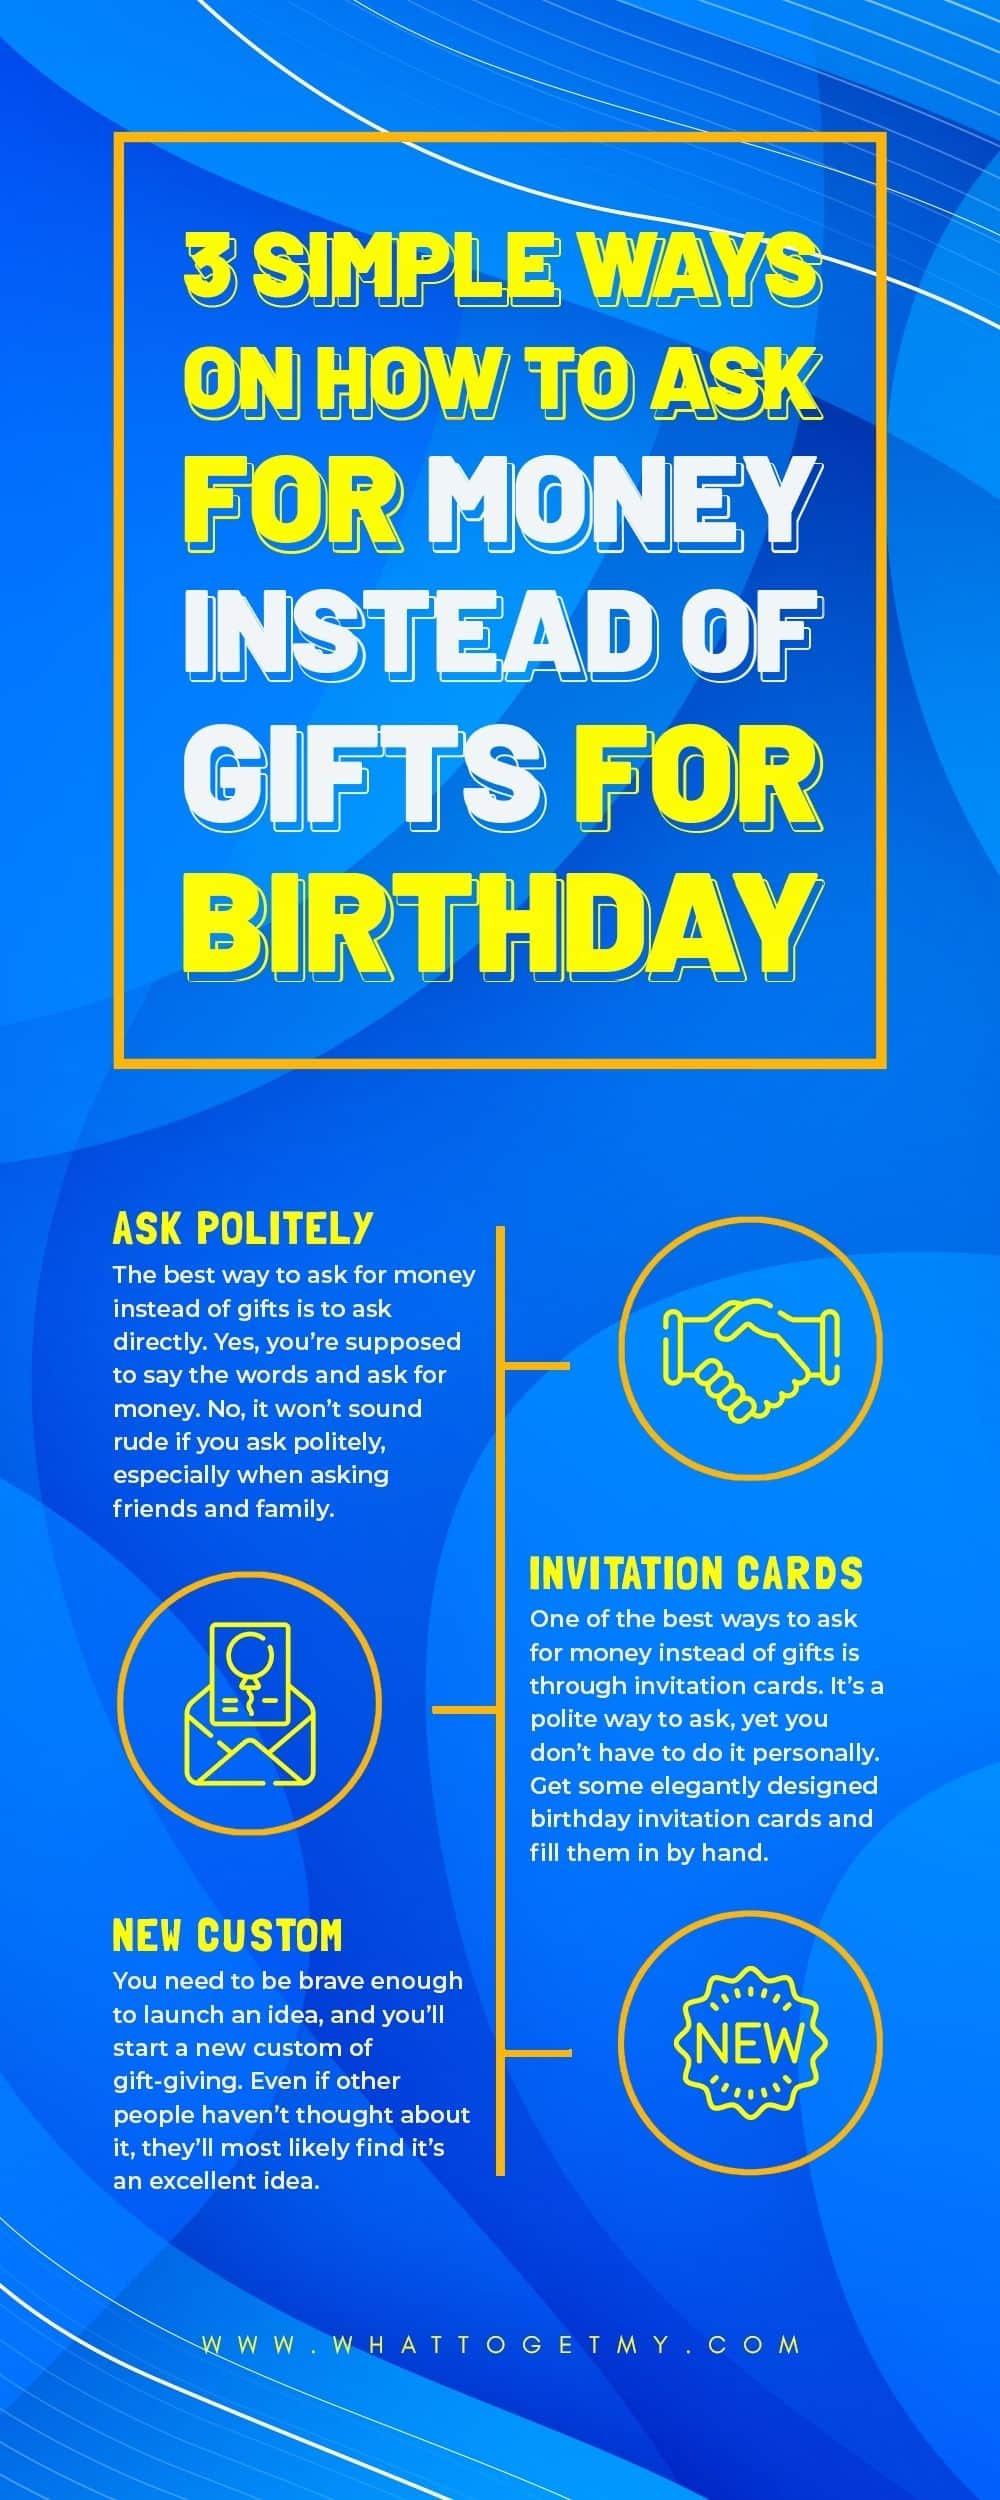 Simple Ways on How to Ask for Money Instead of Gifts for Birthday